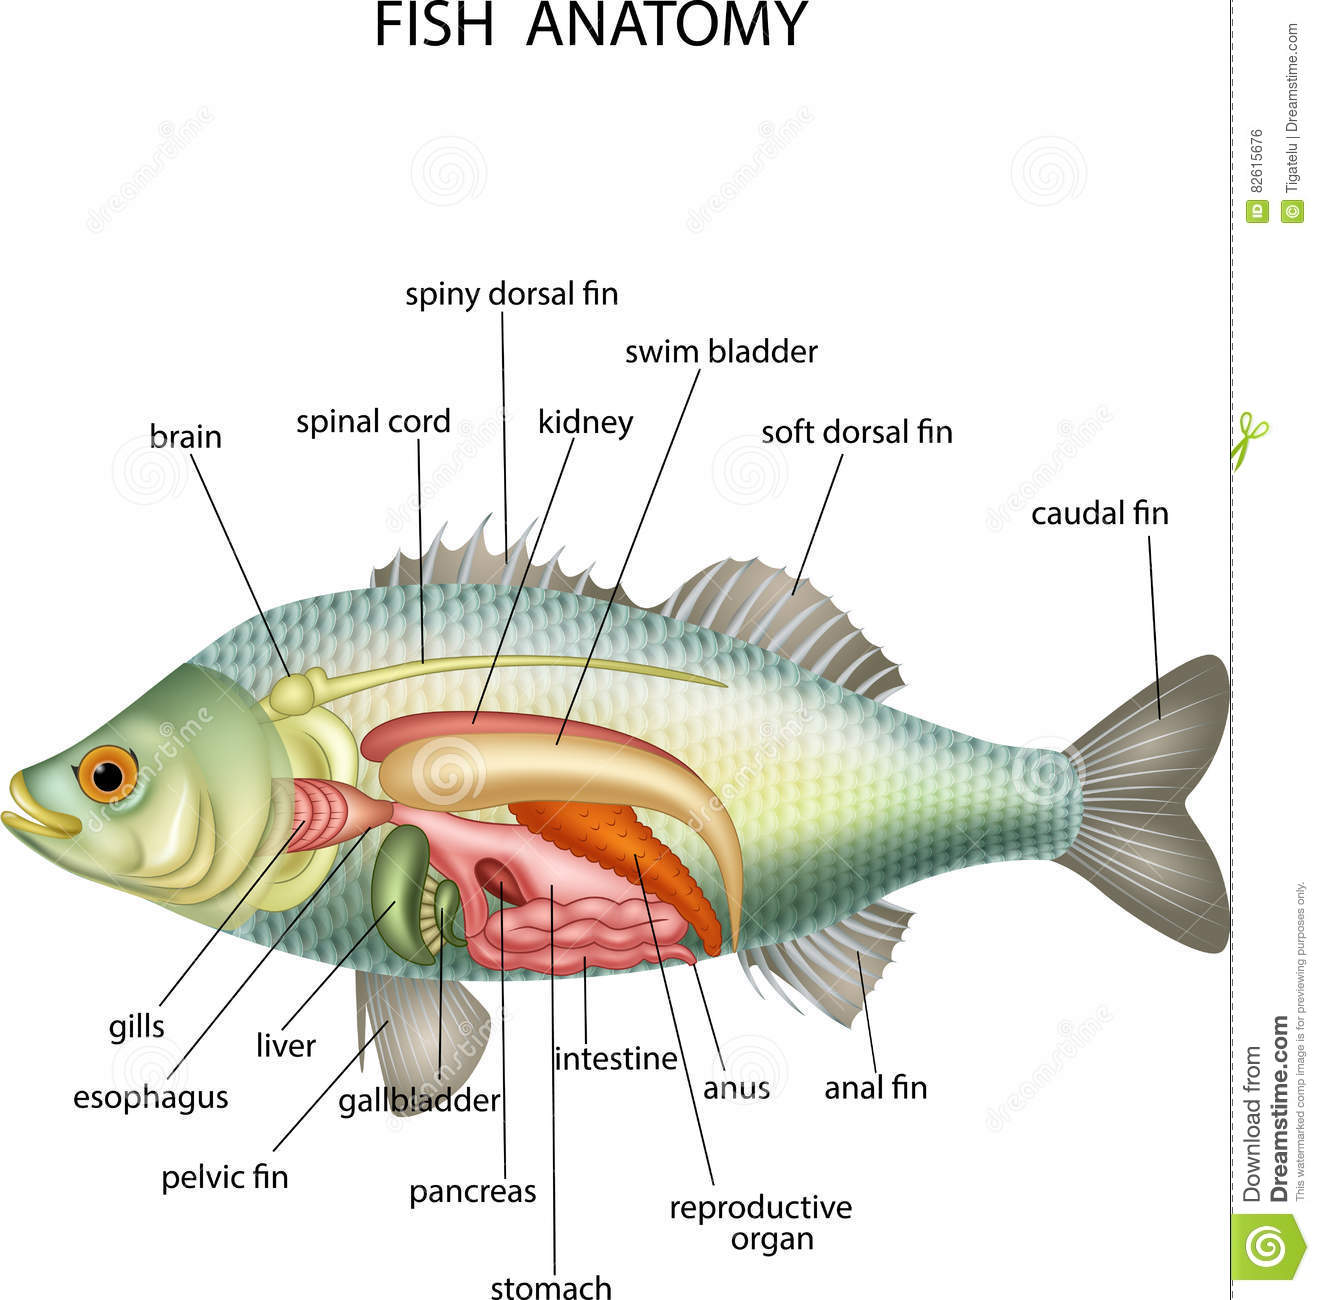 Anatomy of fish stock vector illustration of diagram 82615676 anatomy of fish pooptronica